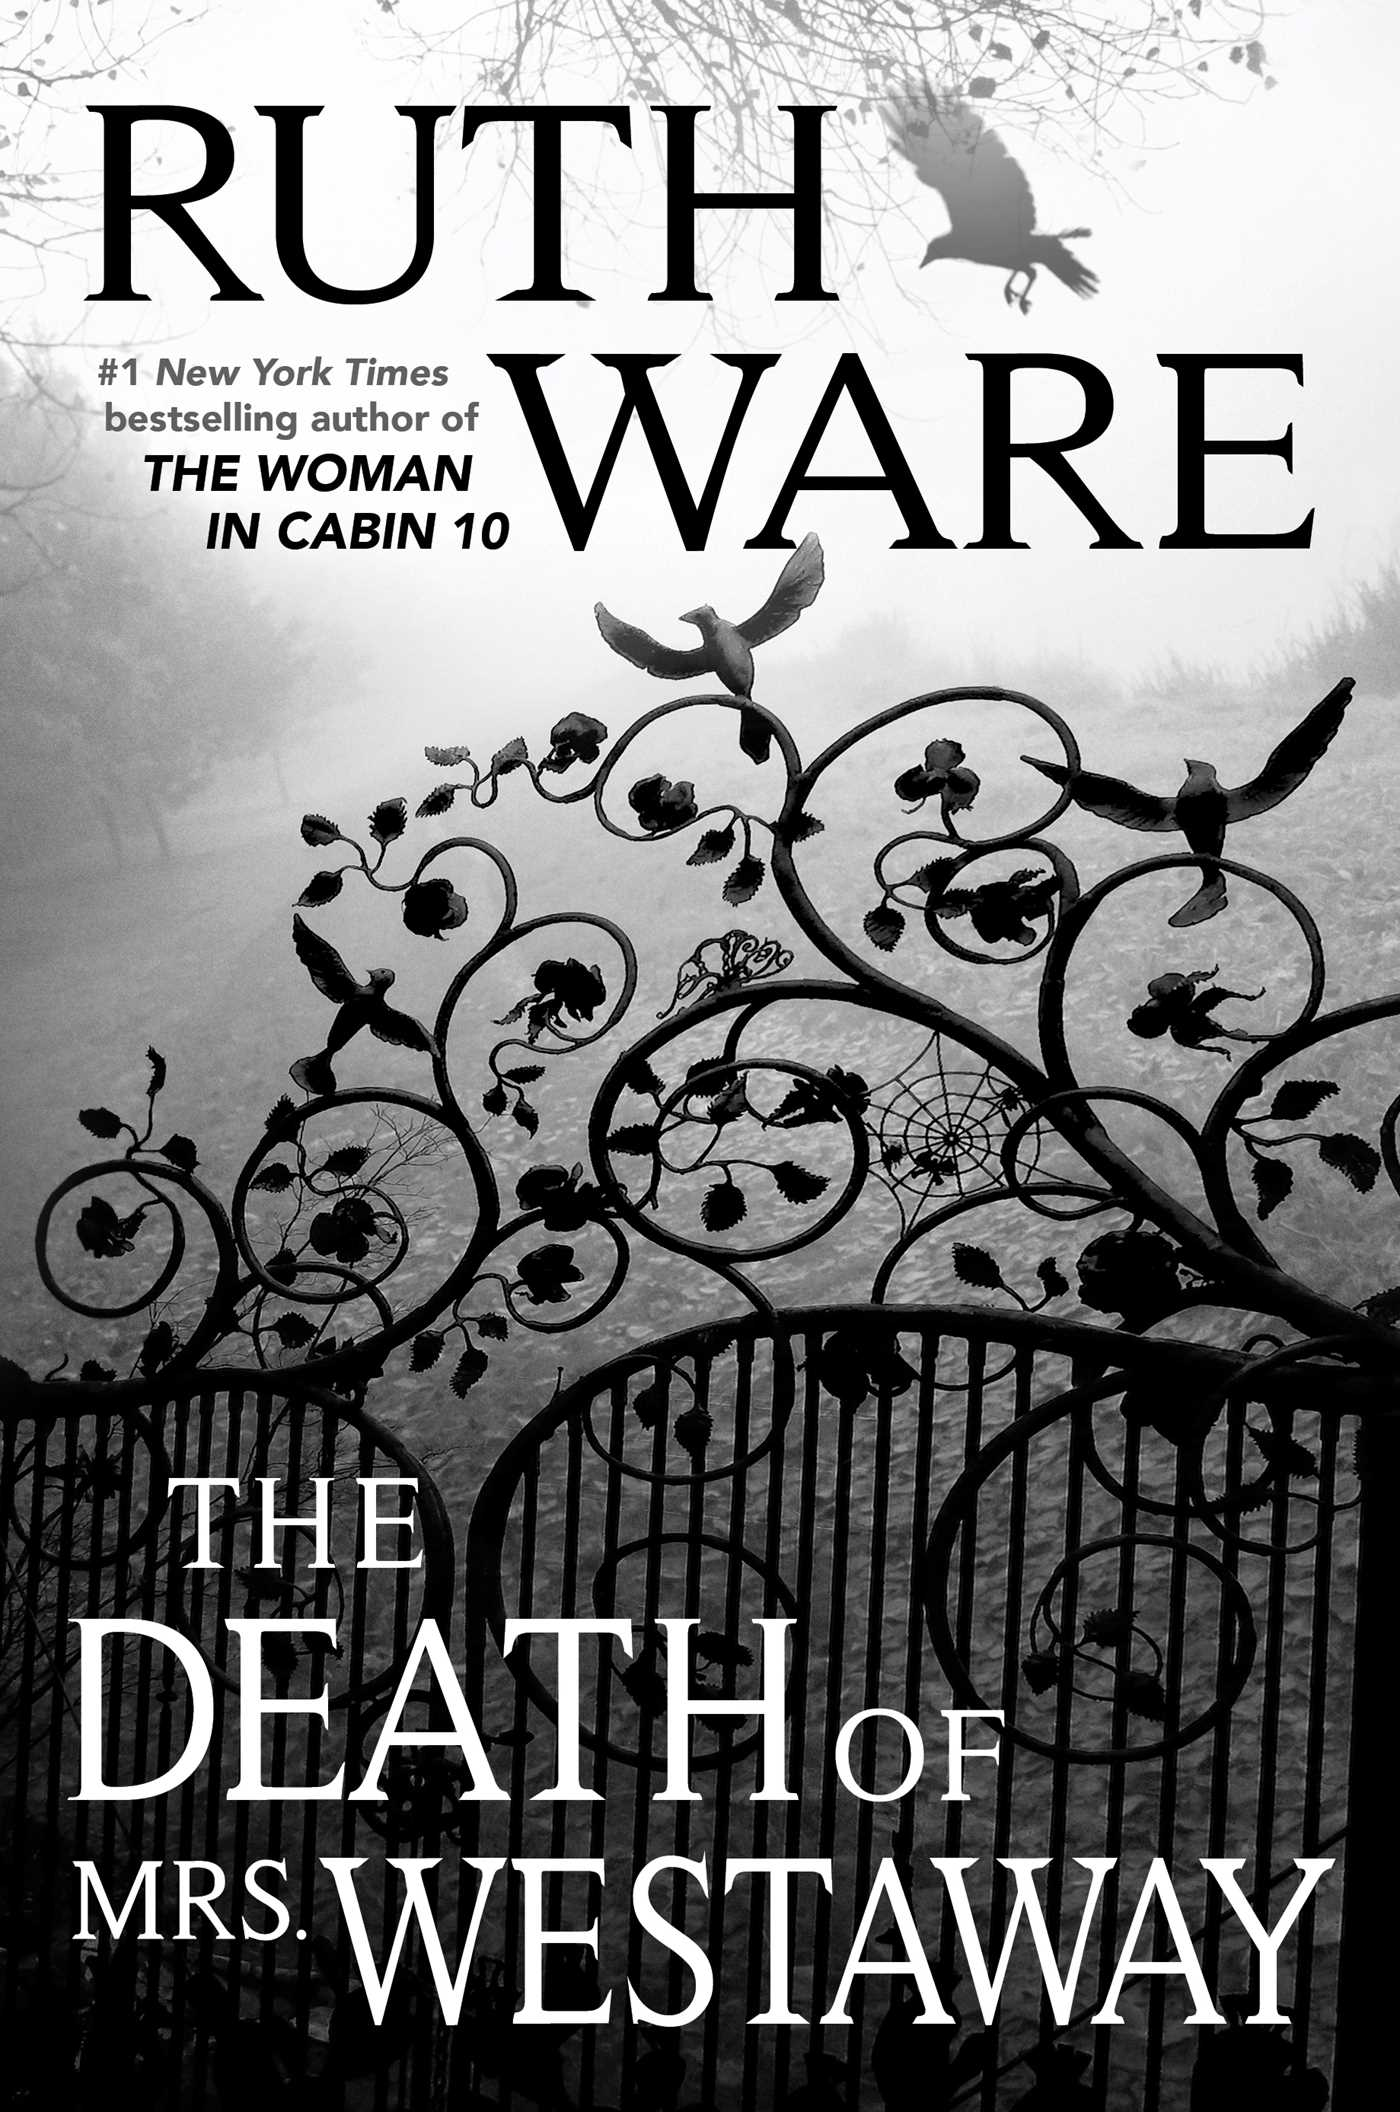 The death of mrs westaway 9781501151835 hr